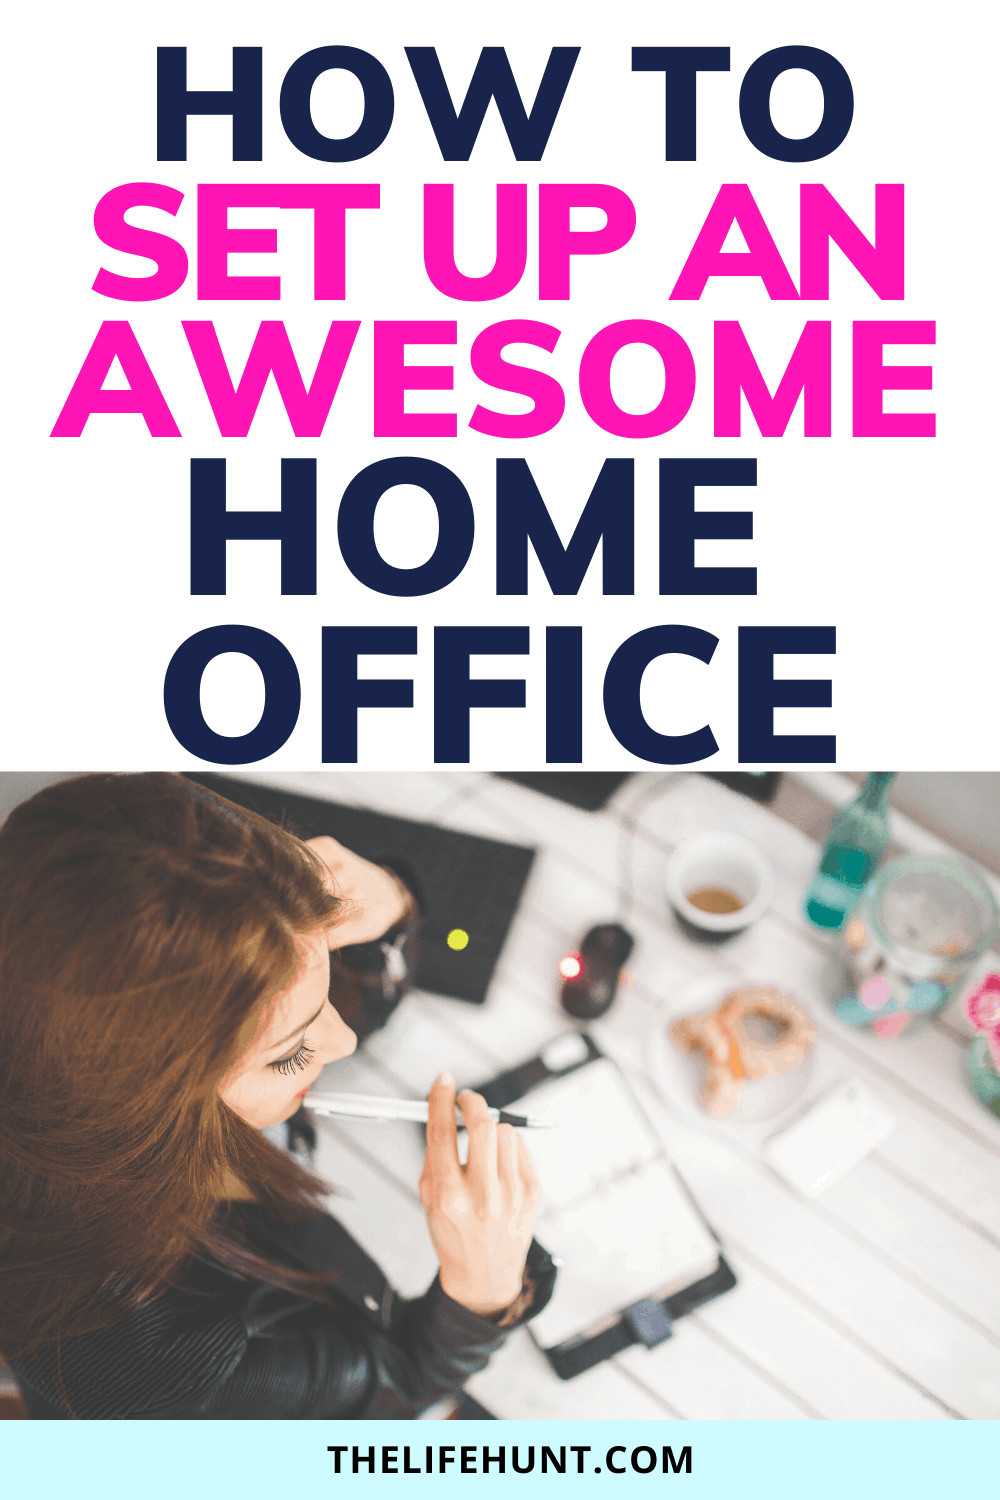 comfortable home office girl holding pen